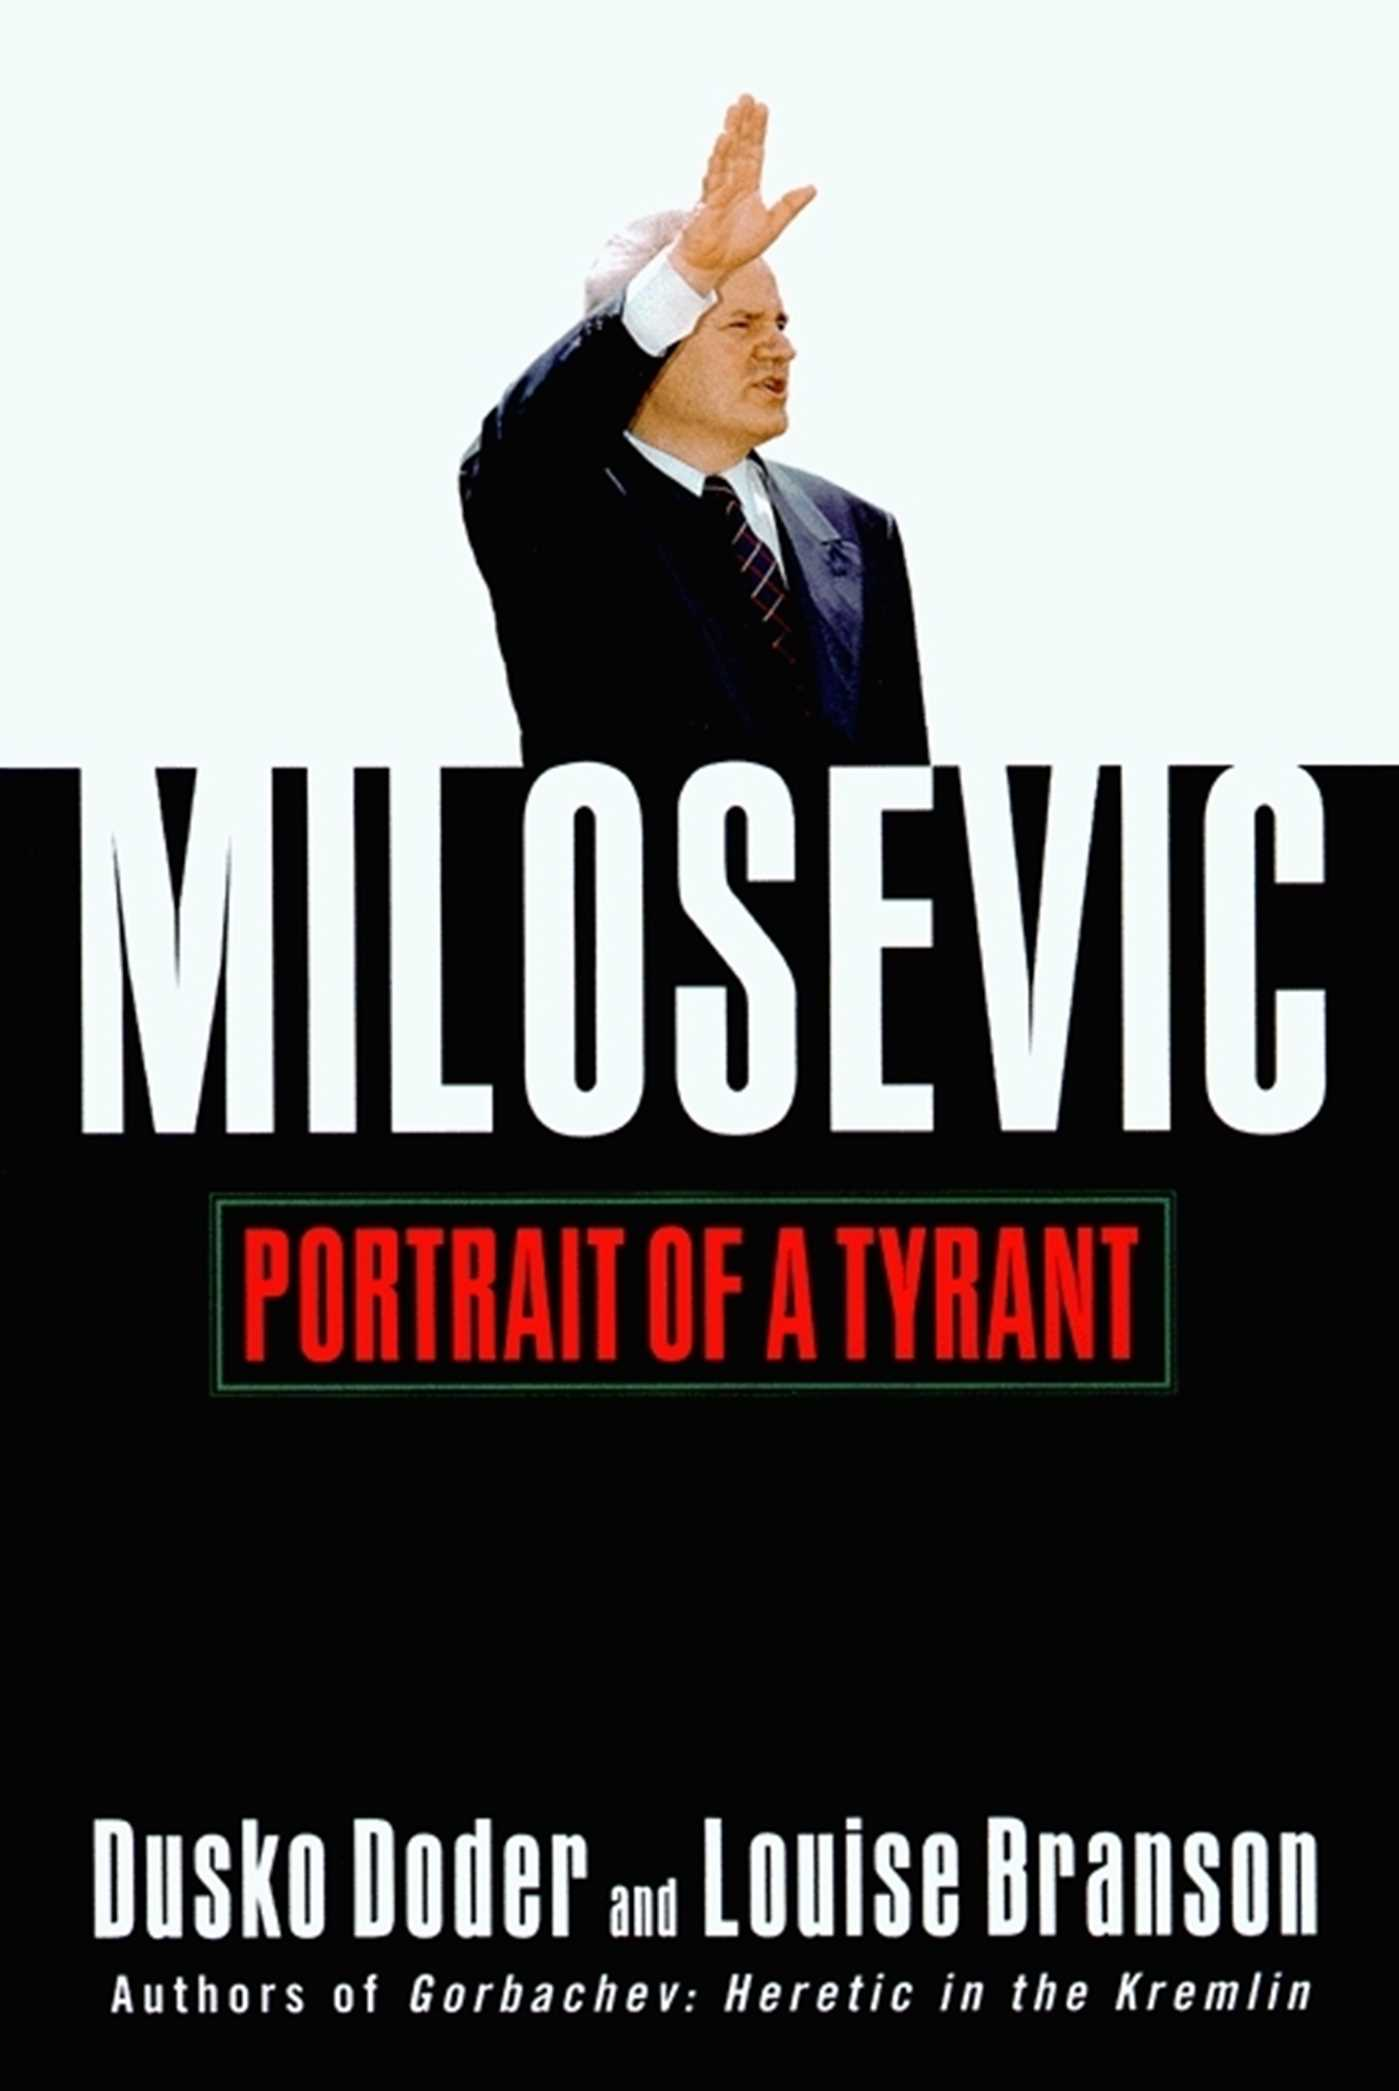 Milosevic 9781439136393 hr